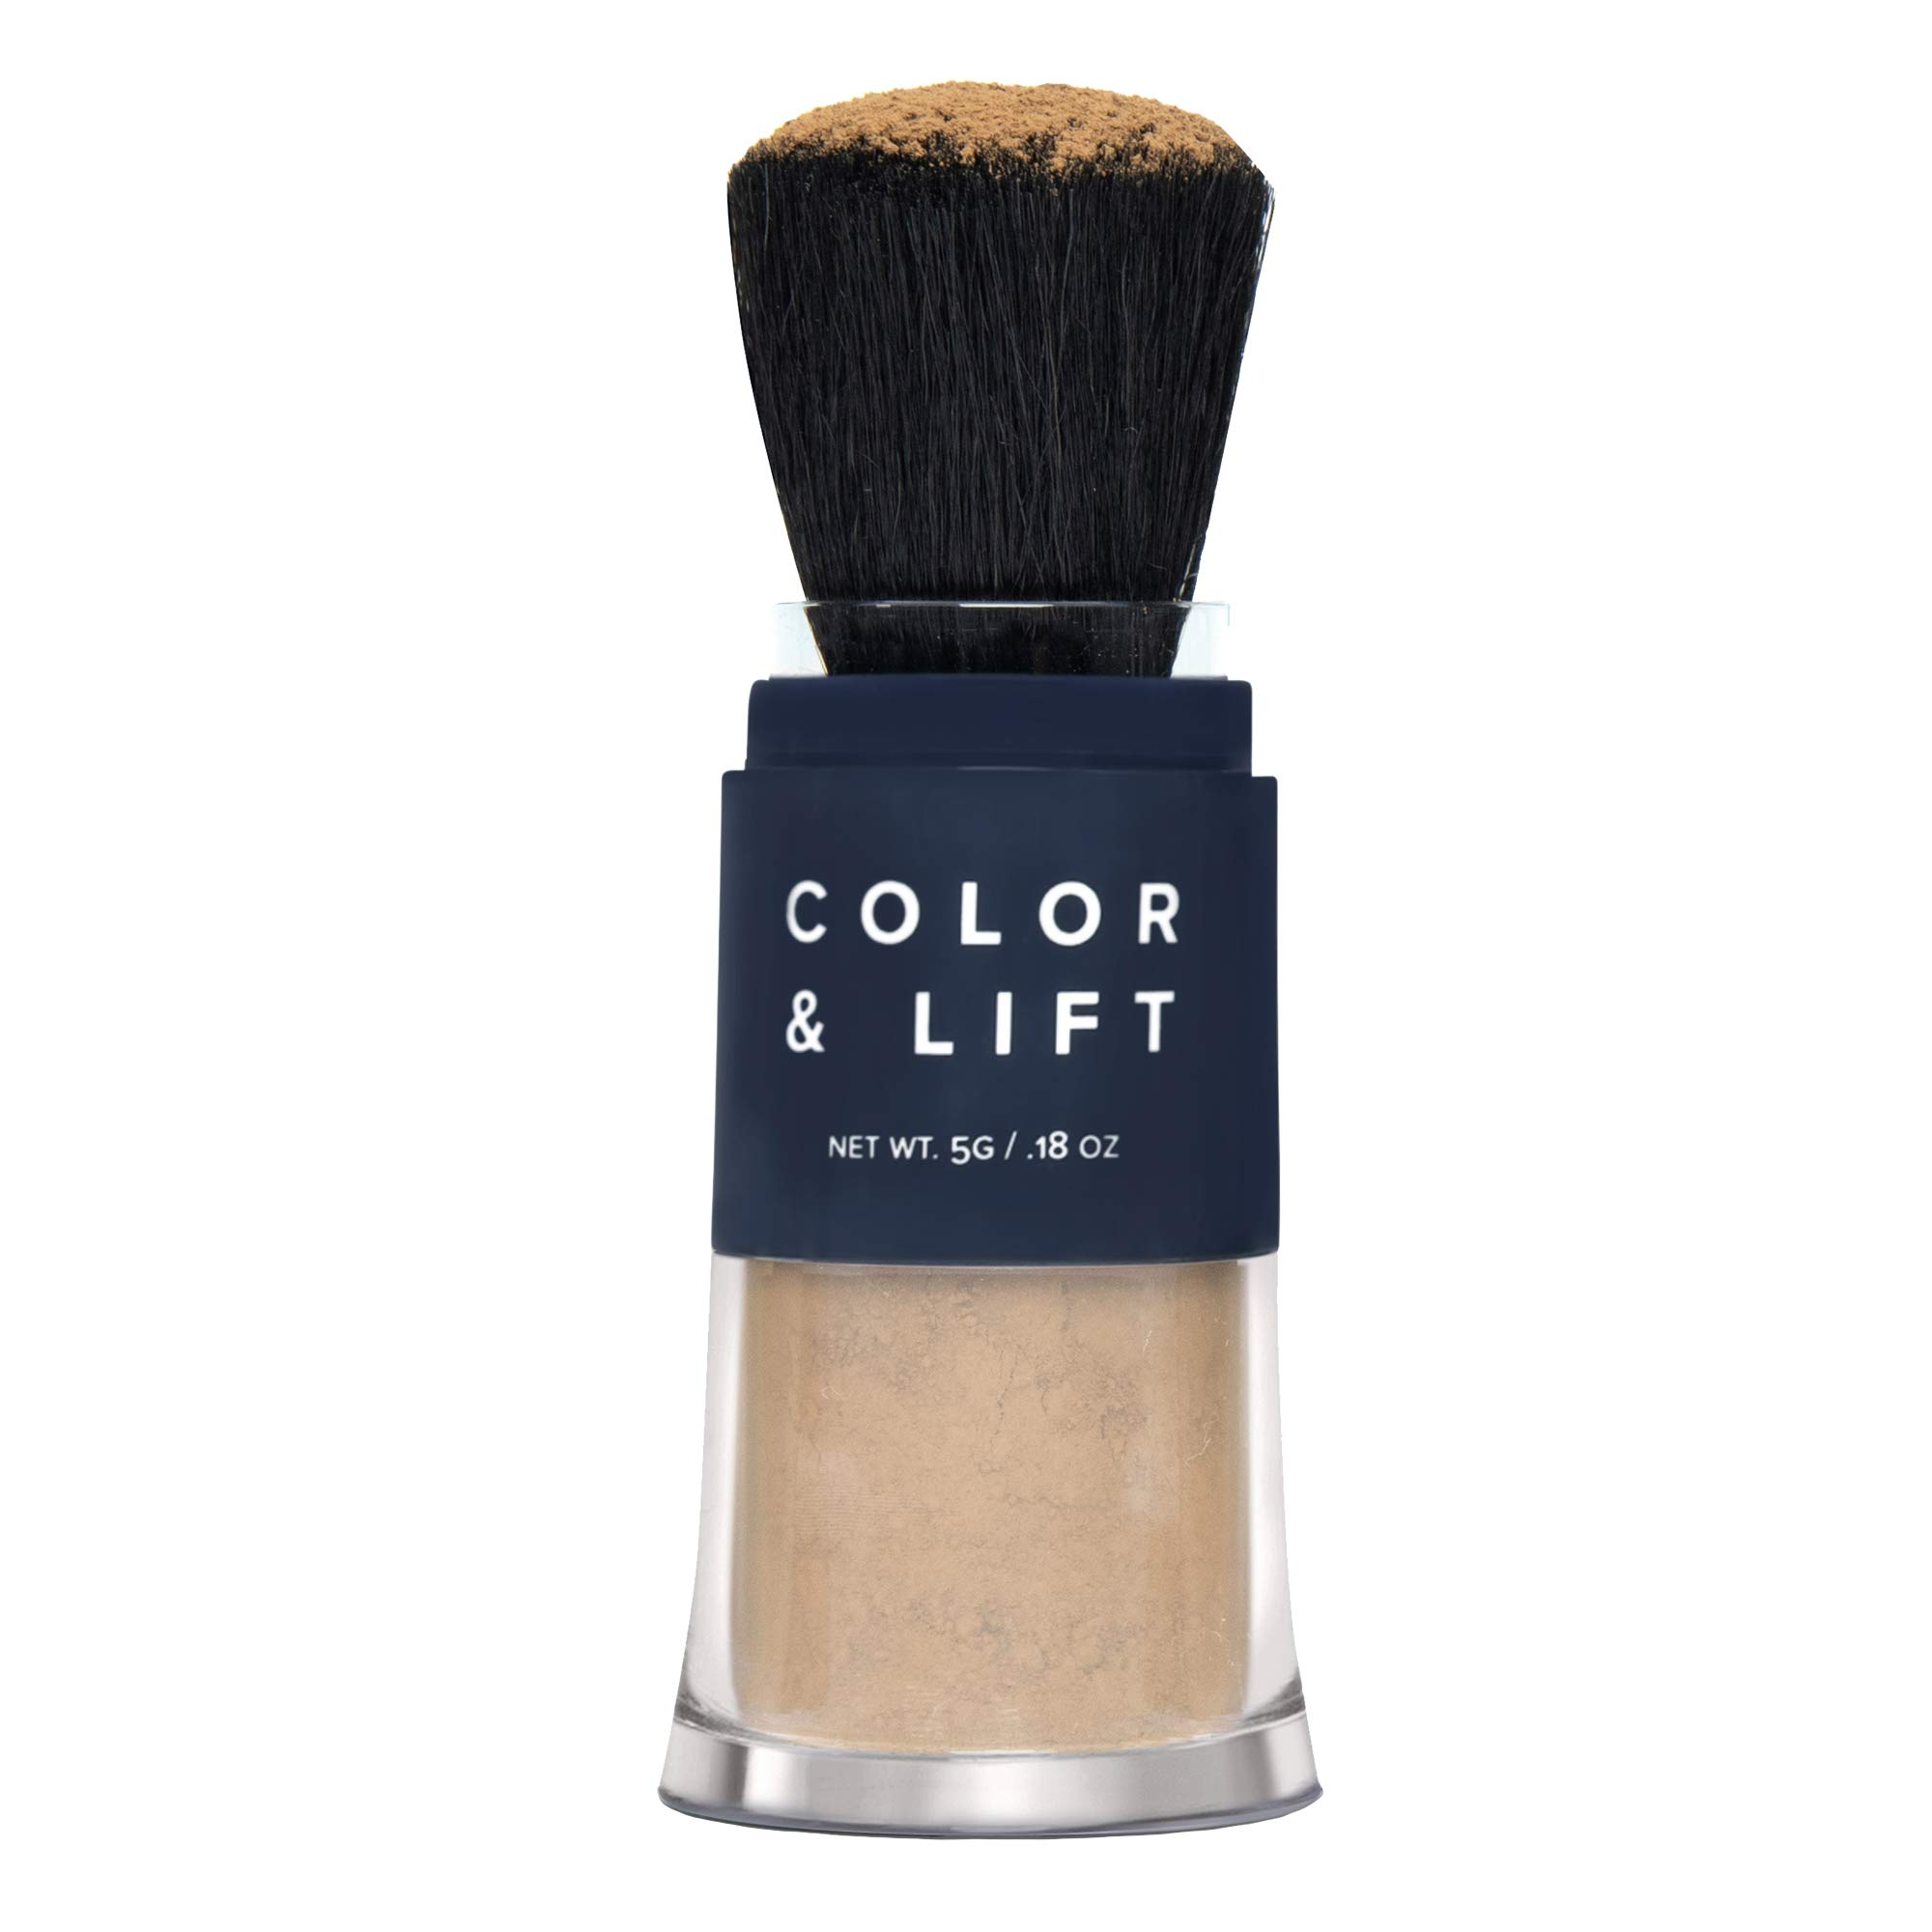 Color & Lift with Thickening Powder - Available in 8 Hair Colors - Root Cover Up - Temporary Hair Coloring Brush that Refreshes Hair - Medium Brown by TRUHAIR by Chelsea Scott